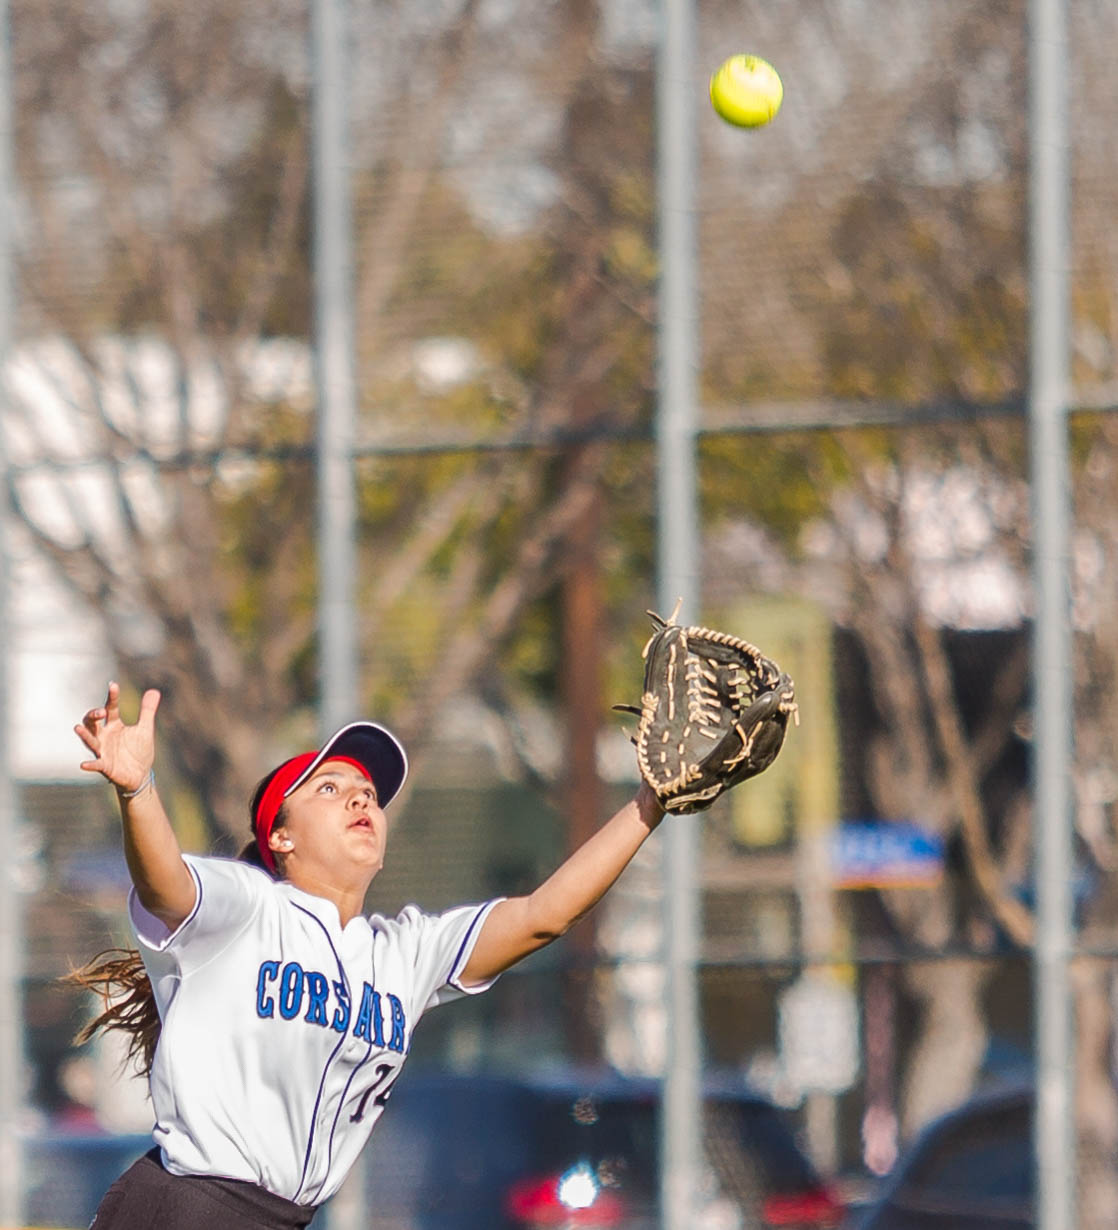 Santa Monica College Corsair freshman outfielder Jen Baca #14 focuses as she reaches for the ball in the outfield, which is hit by a Bakersfield College Renegade's batter Alexis Solis #17(not shown) during the bottom of the 3rd inning at the Santa Monica College Corsair Field in Santa Monica California, on Tuesday, March 6, 2018. Baca would successfully catch the ball, ending the inning for the Bakersfield College Renegades, sending the Corsairs back in to bat at the top of the 4th inning. However, the Corsairs would go on to lose the game 0-9 to the Bakersfield College Renegades, making the Corsairs tally for the season 6 wins and 11 losses. (Corsair Photo: Matthew Martin)